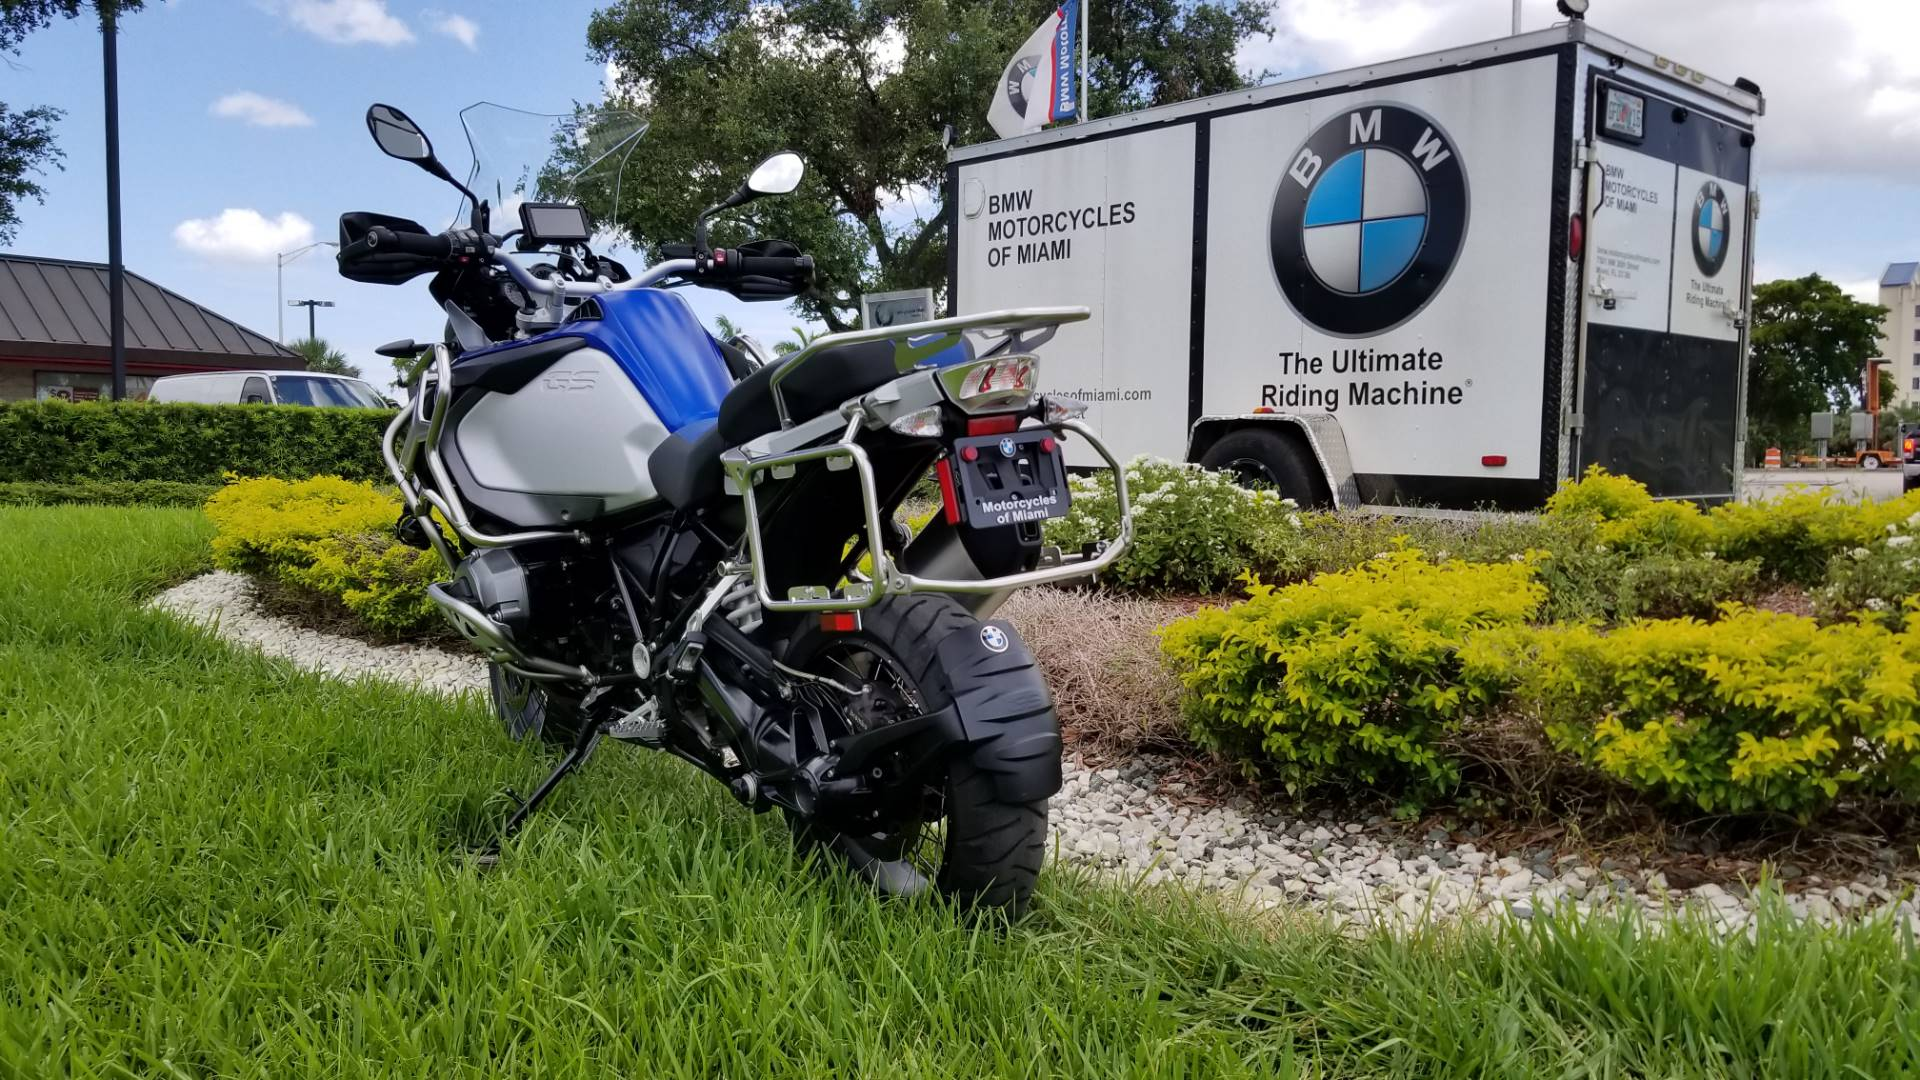 Used 2015 BMW R 1200 GSA For Sale, Pre Owned BMW R 1200GSA For Sale, Pre-Owned BMW Motorcycle R1200GSA, BMW Motorcycle, ADVENTURE, BMW